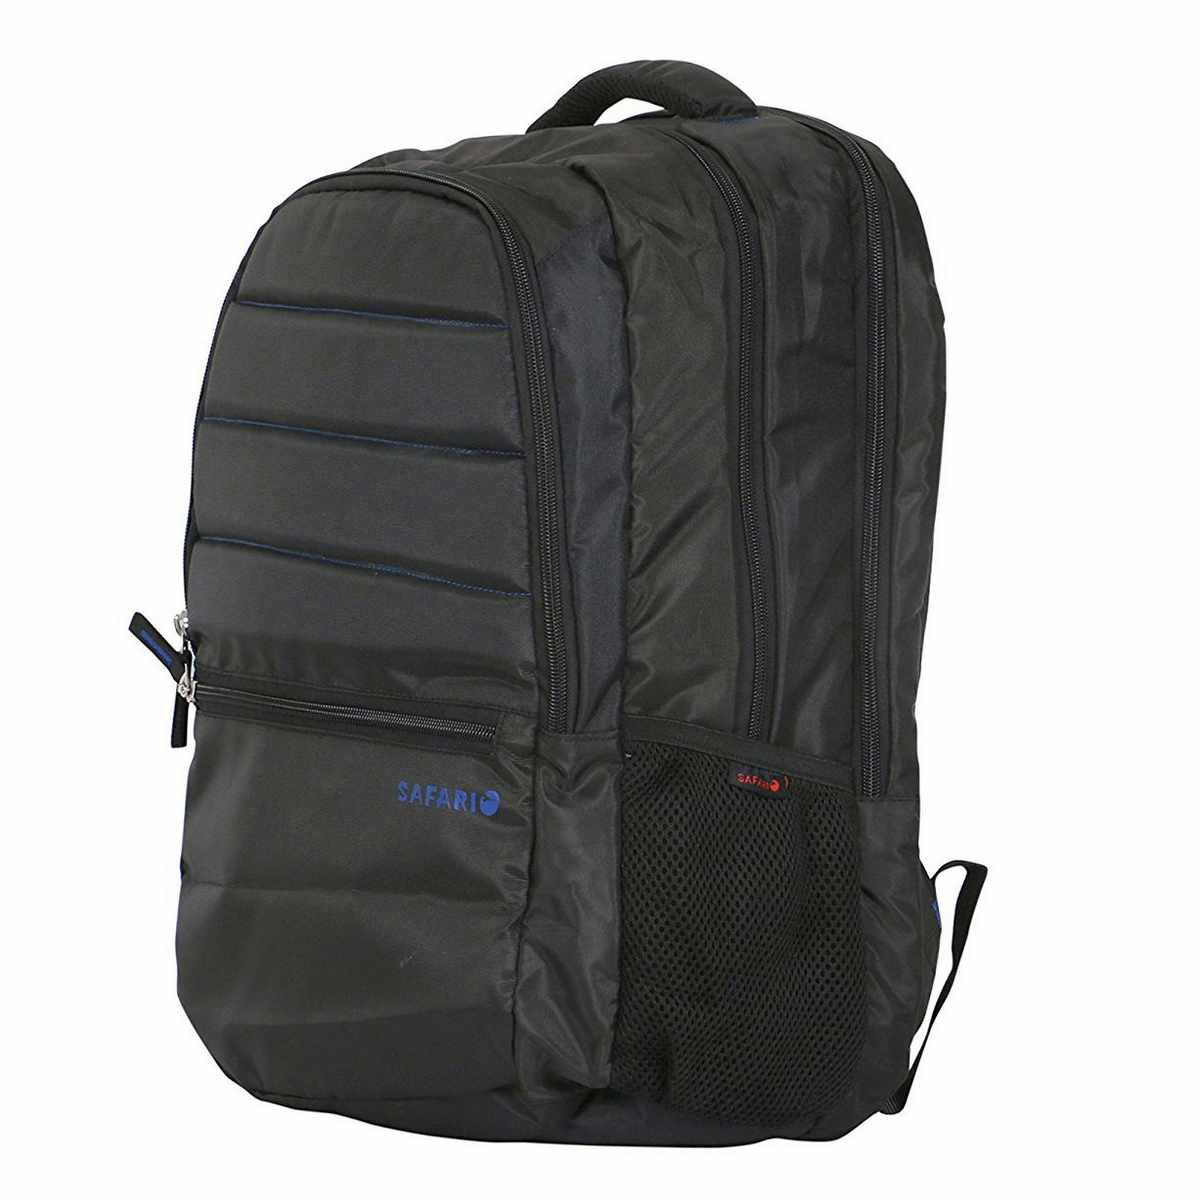 8296dcb4c4 Safari Trance Laptop Backpack Bag-Sunrise Trading Co.